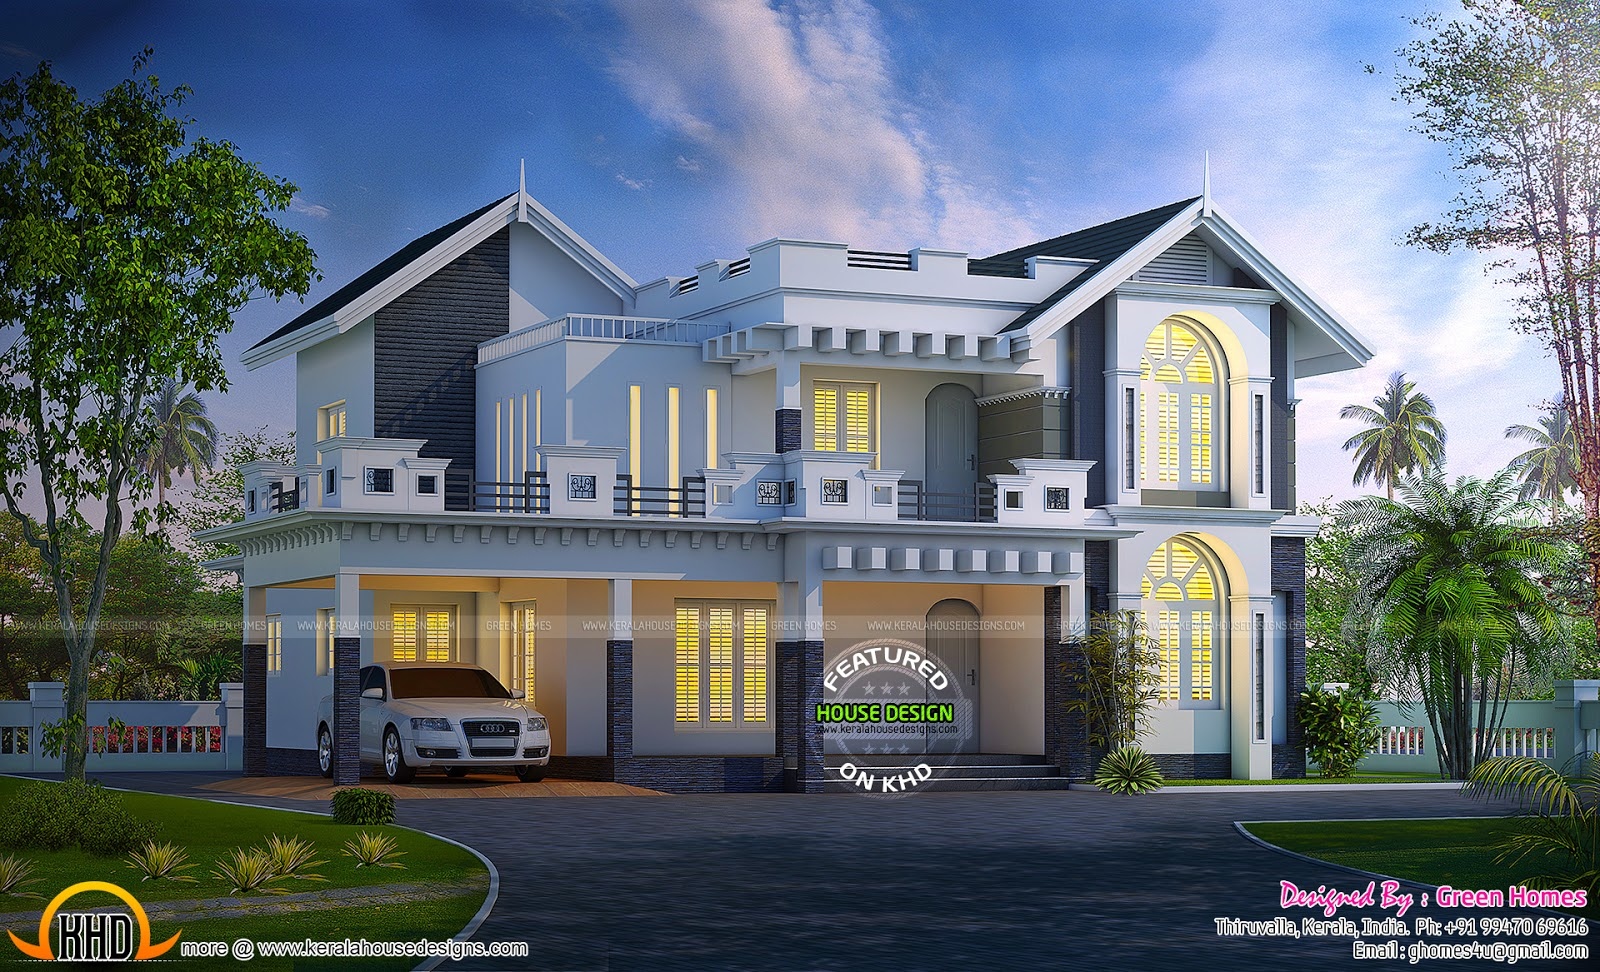 western design homes. Awesome western model house plan  Kerala home design Bloglovin